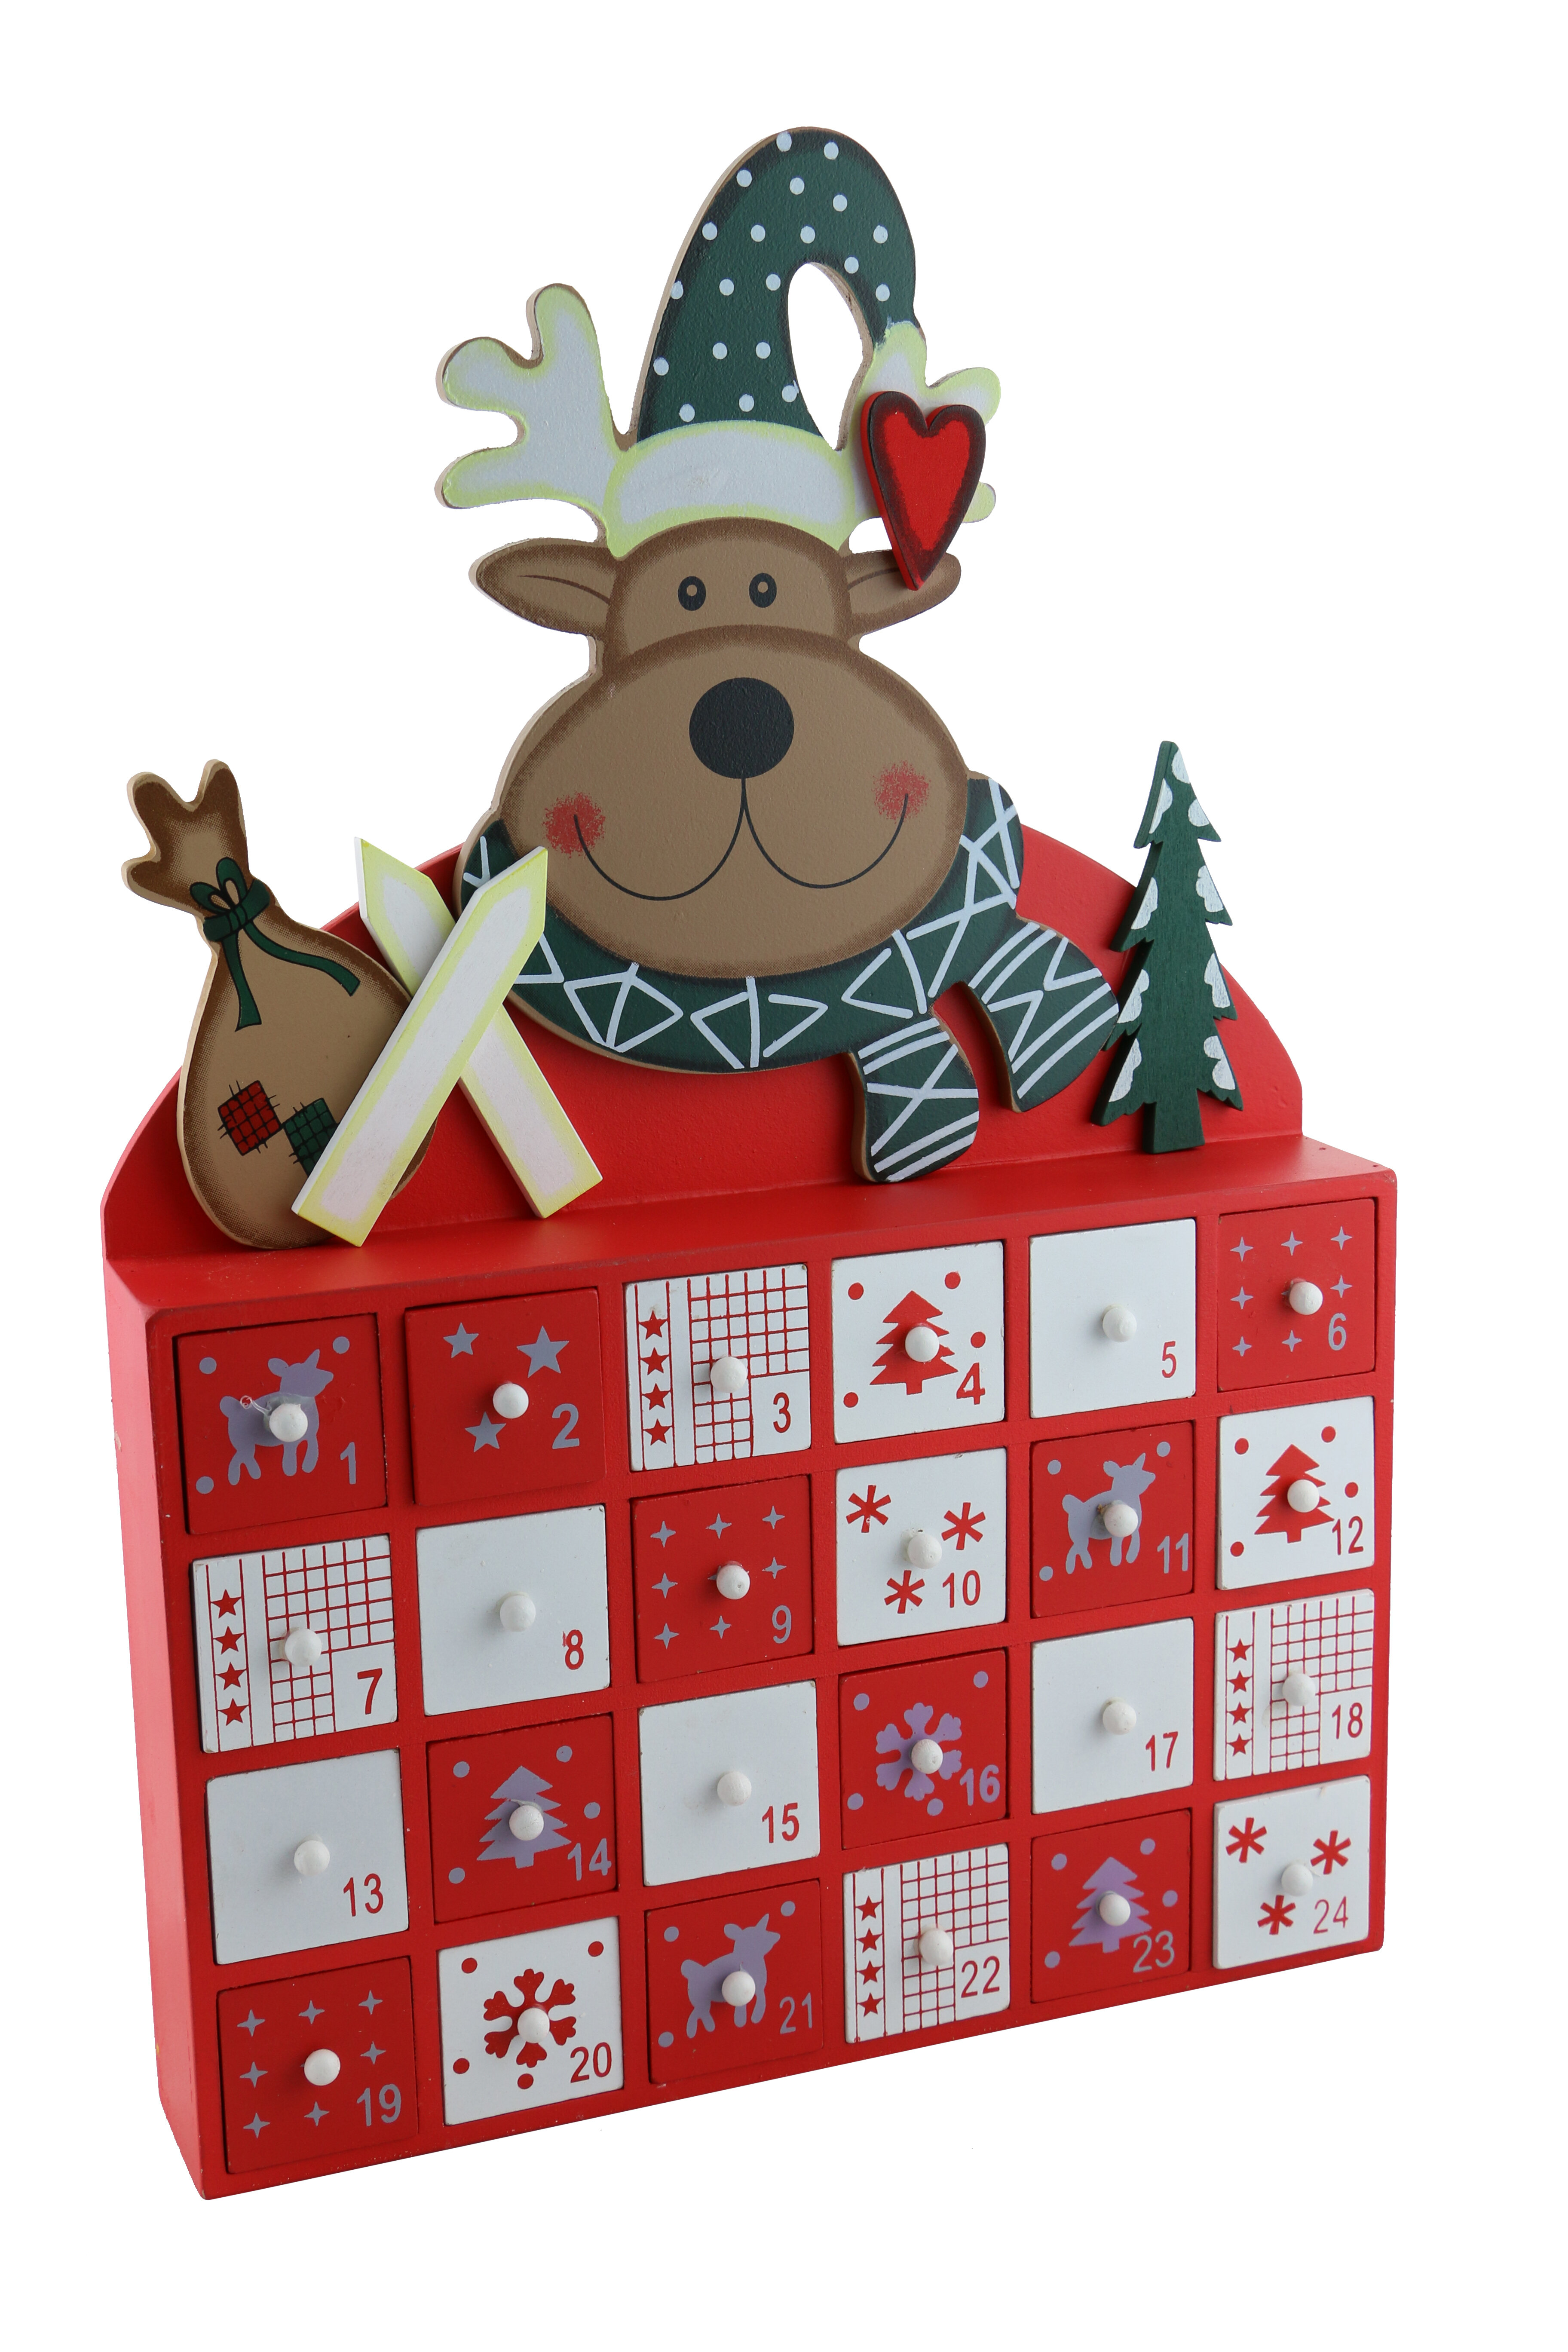 Christmas Advent Calendars You'll Love in 2019 | Wayfair